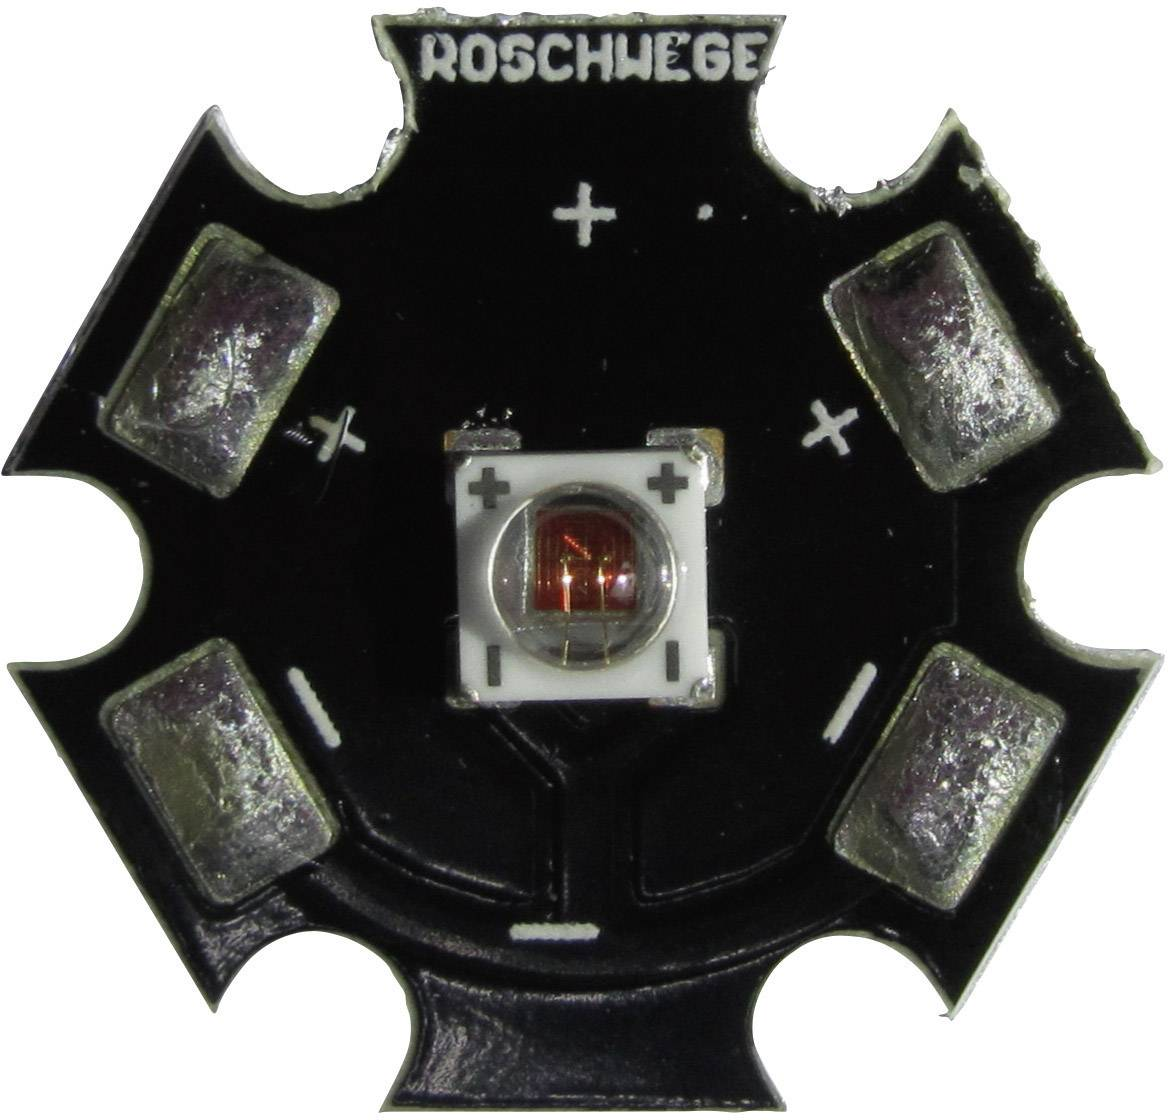 HighPower LED, Star-DR660-05-00-00, 1500 mA, 2,8 V, sytě červená